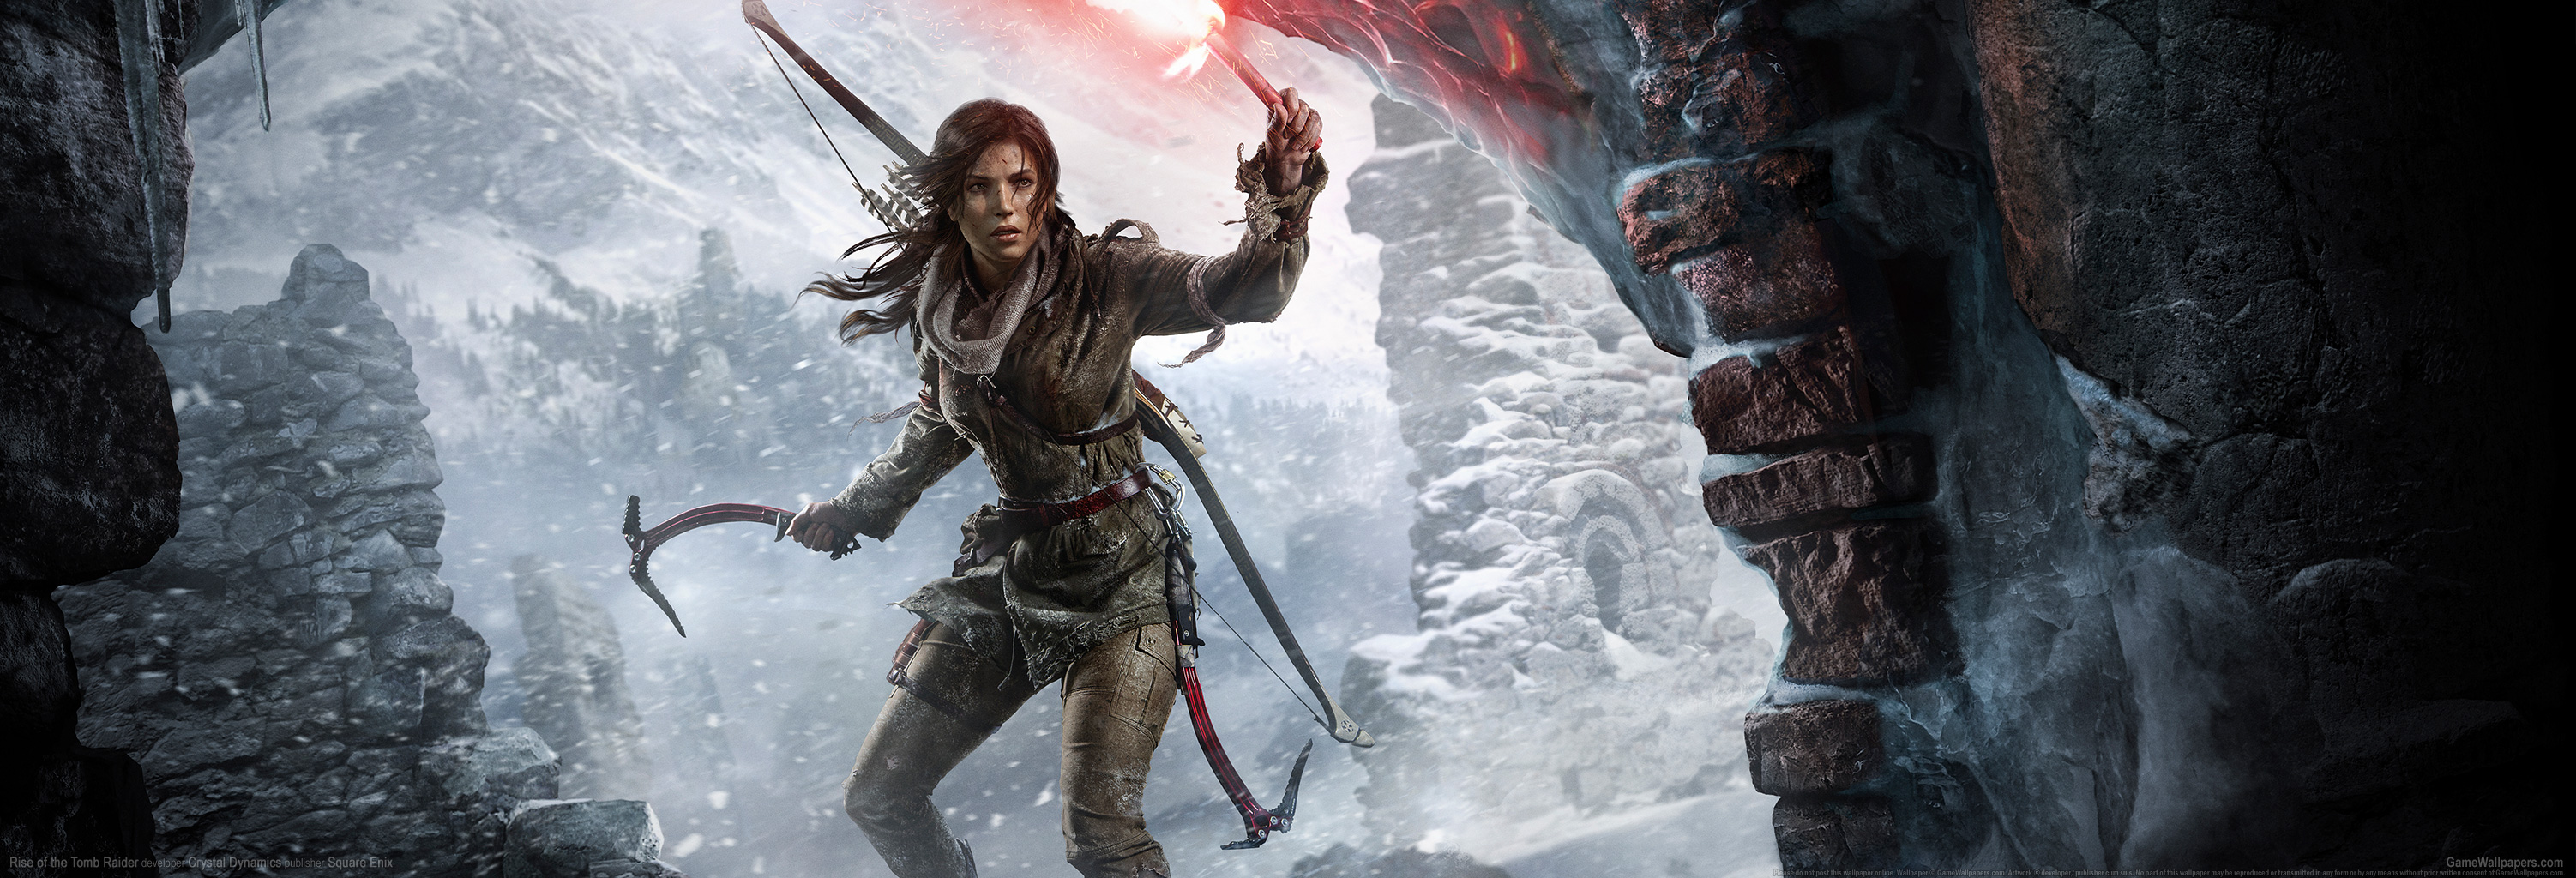 Rise of the Tomb Raider wallpaper 11 3004x1024